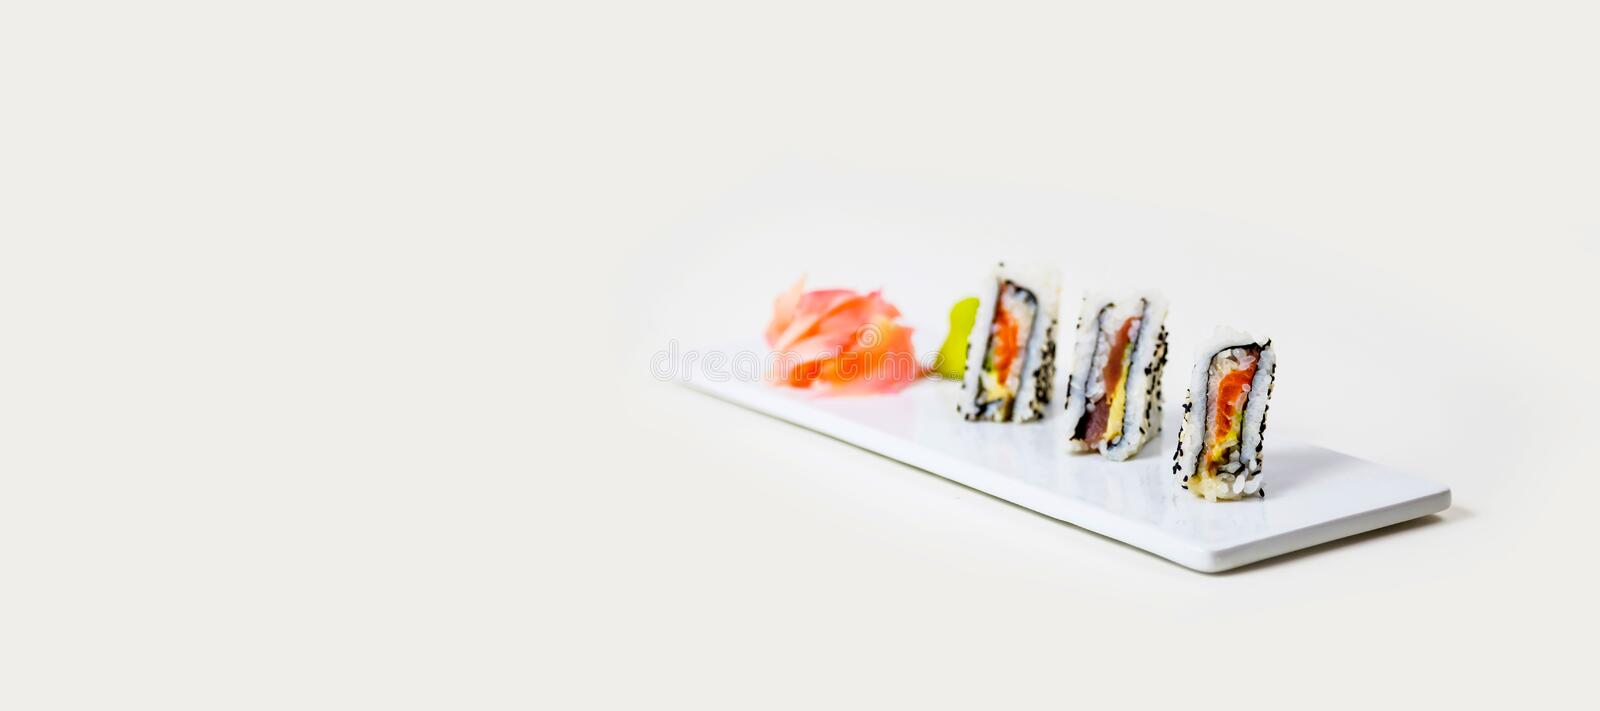 Sushi on a white plate on a white background royalty free stock photos